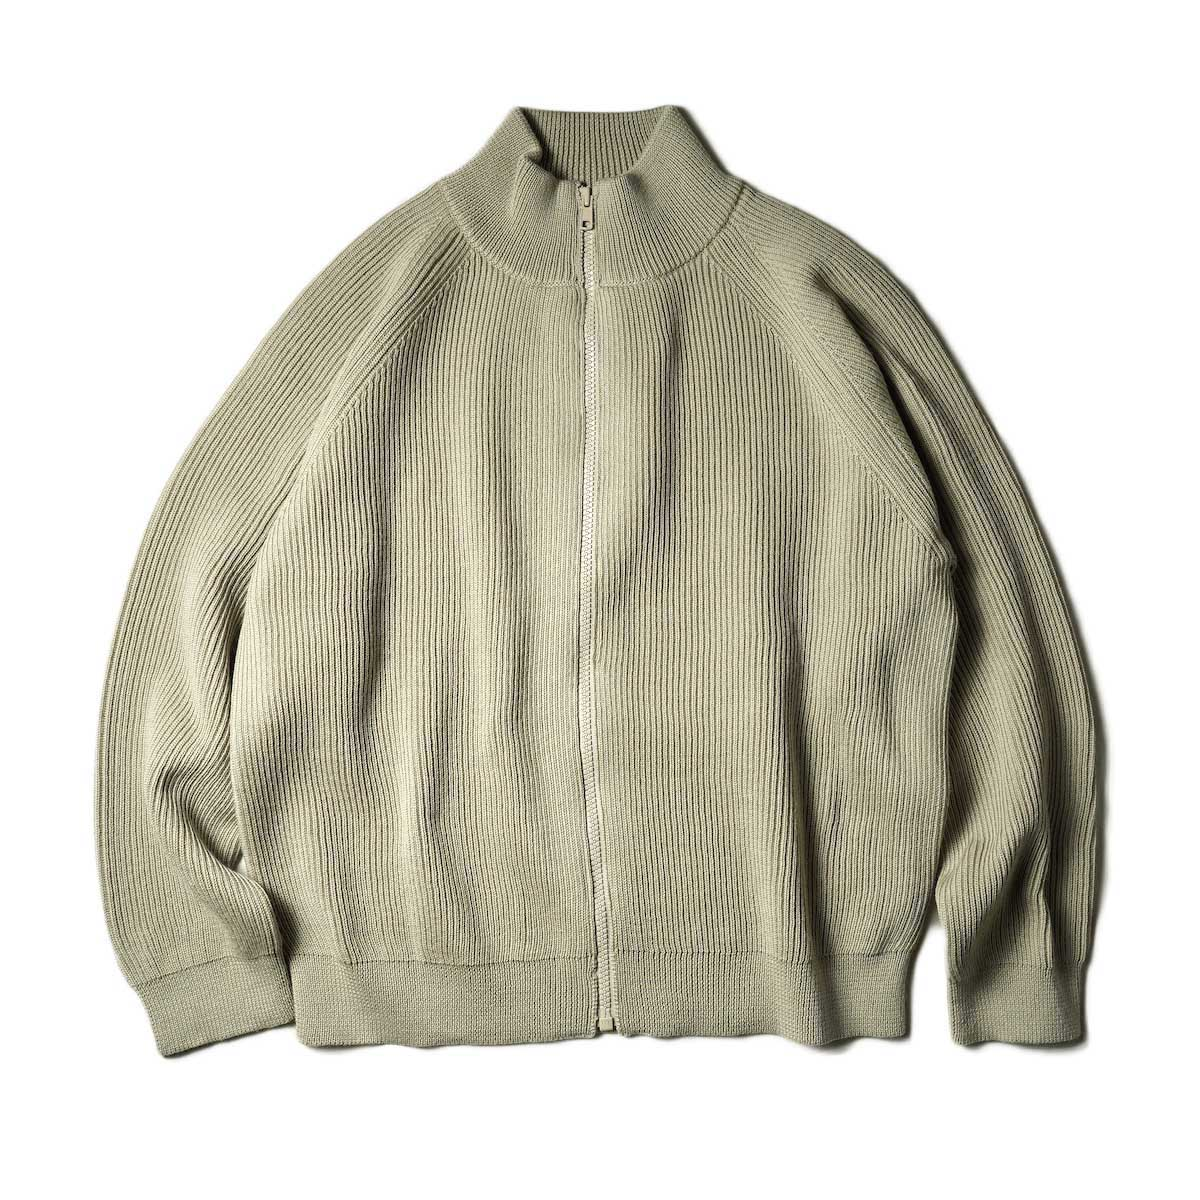 EVCON / DRIVERS SWEATER (Oatmeal)